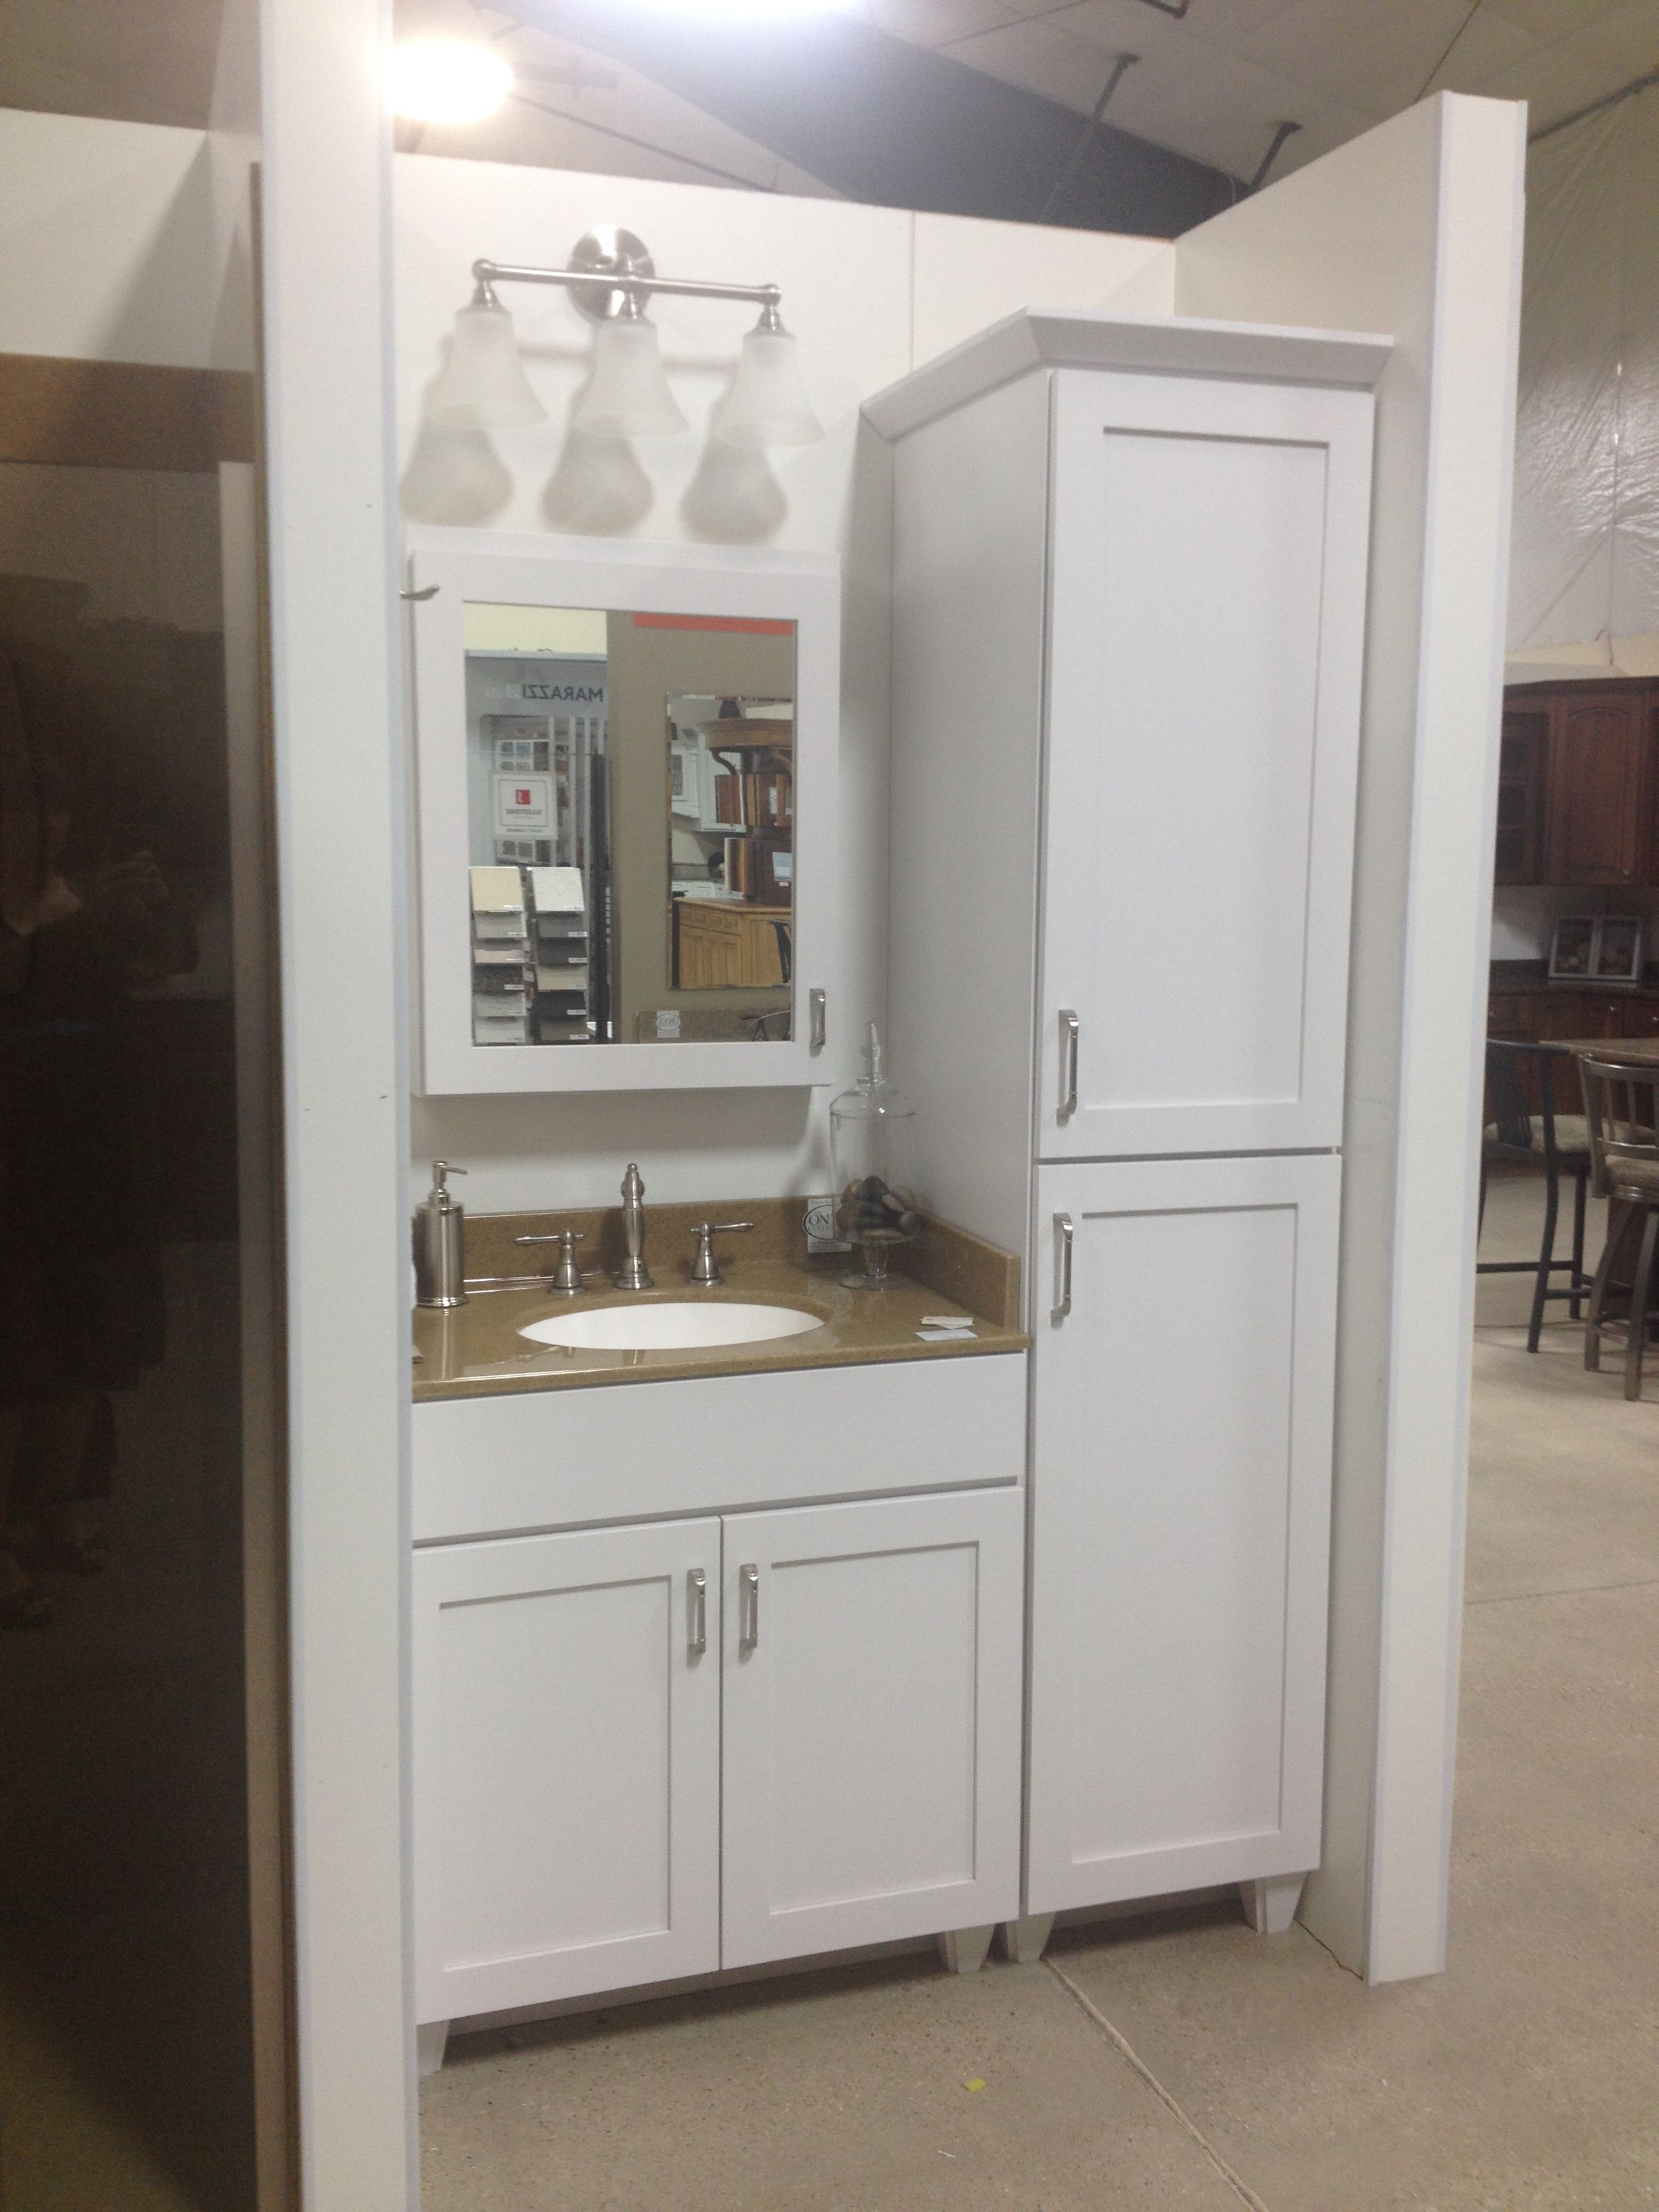 Affordable Kitchens, Baths and Appliances bath display ...